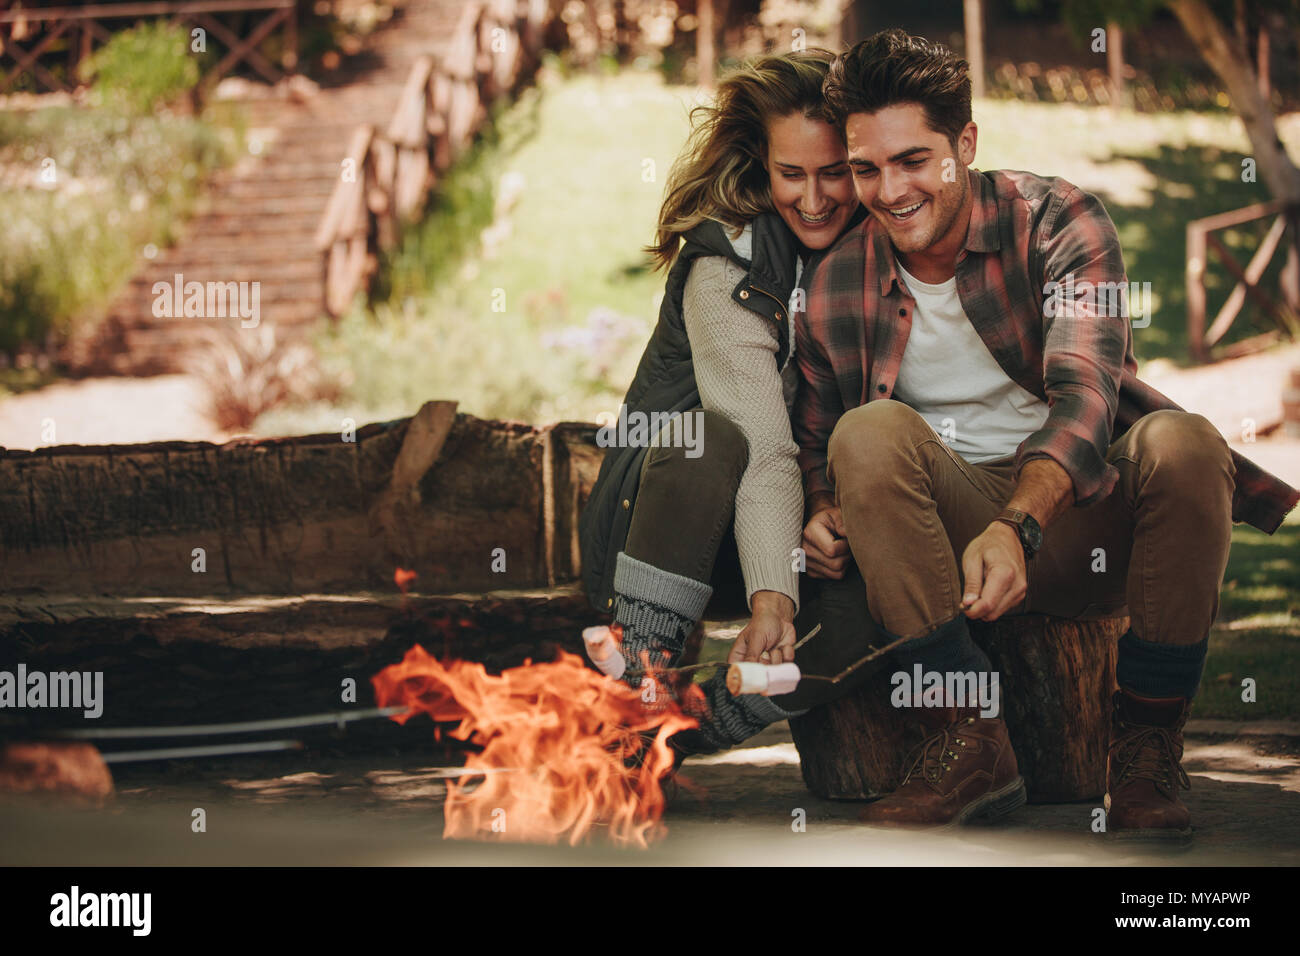 Smiling young couple roasting sweets on bonfire at campsite. Man and woman having roasted marshmallows on camping. - Stock Image